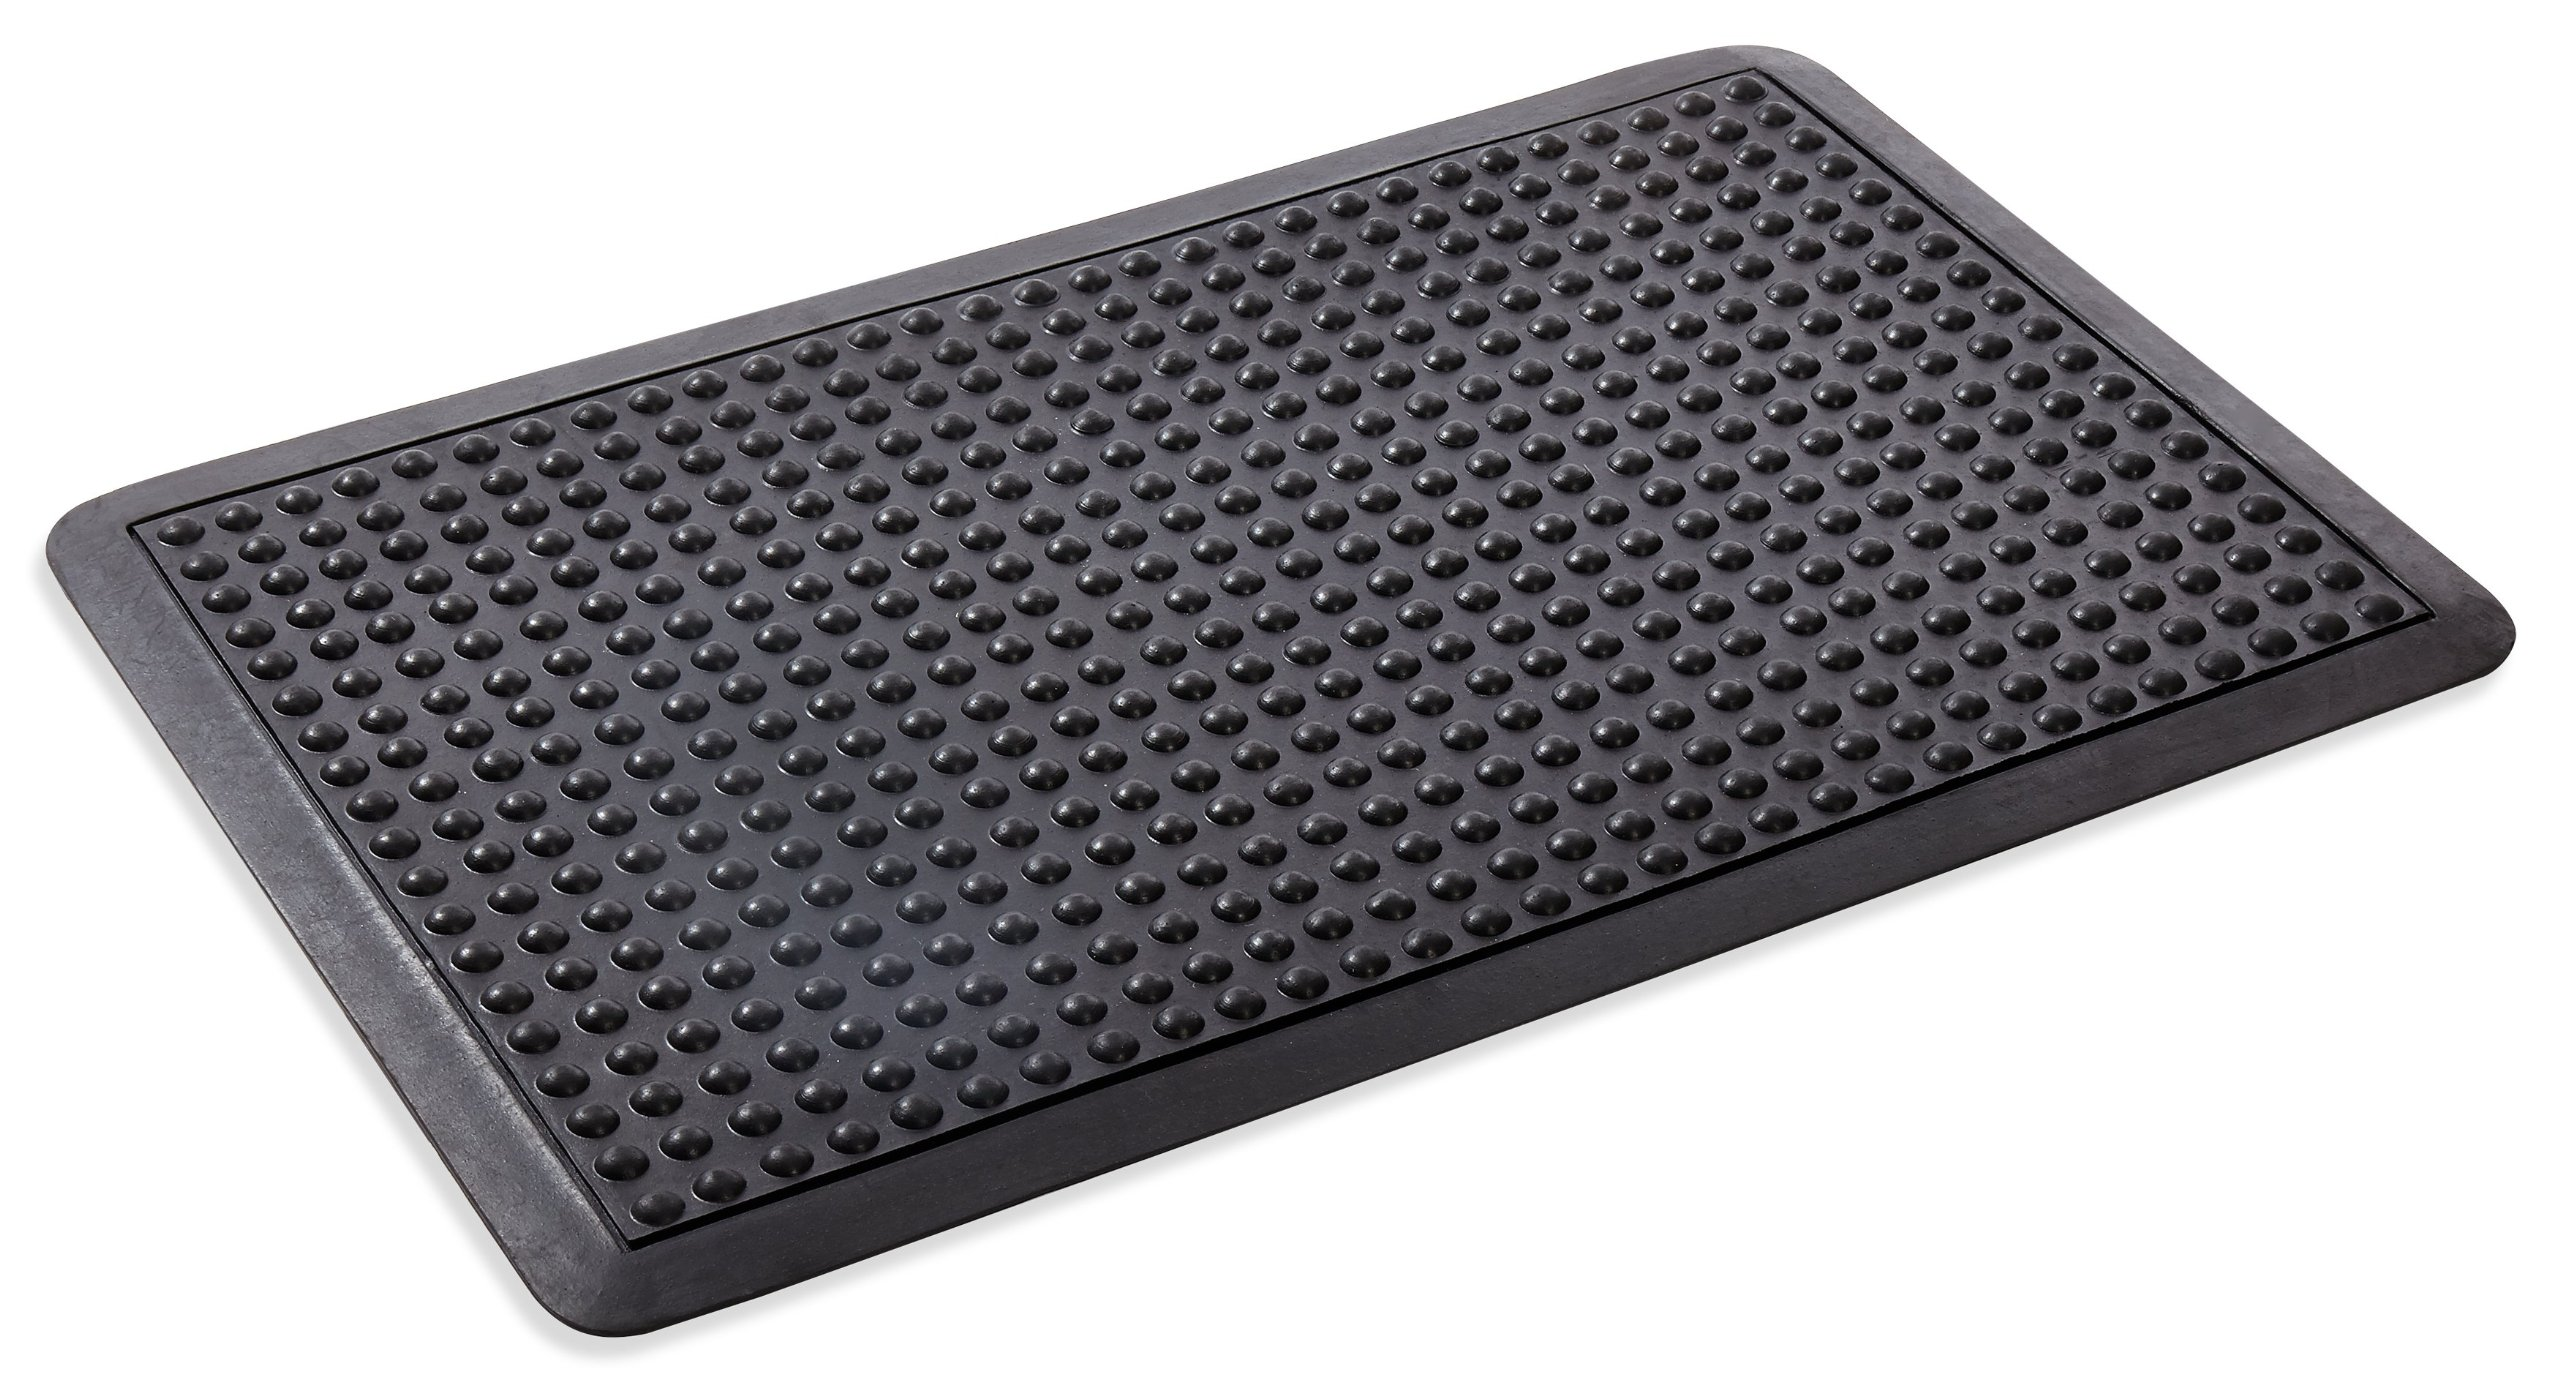 Kempf Anti Fatigue Bubble Surface Rubber Mat 2' X 3' by Kempf